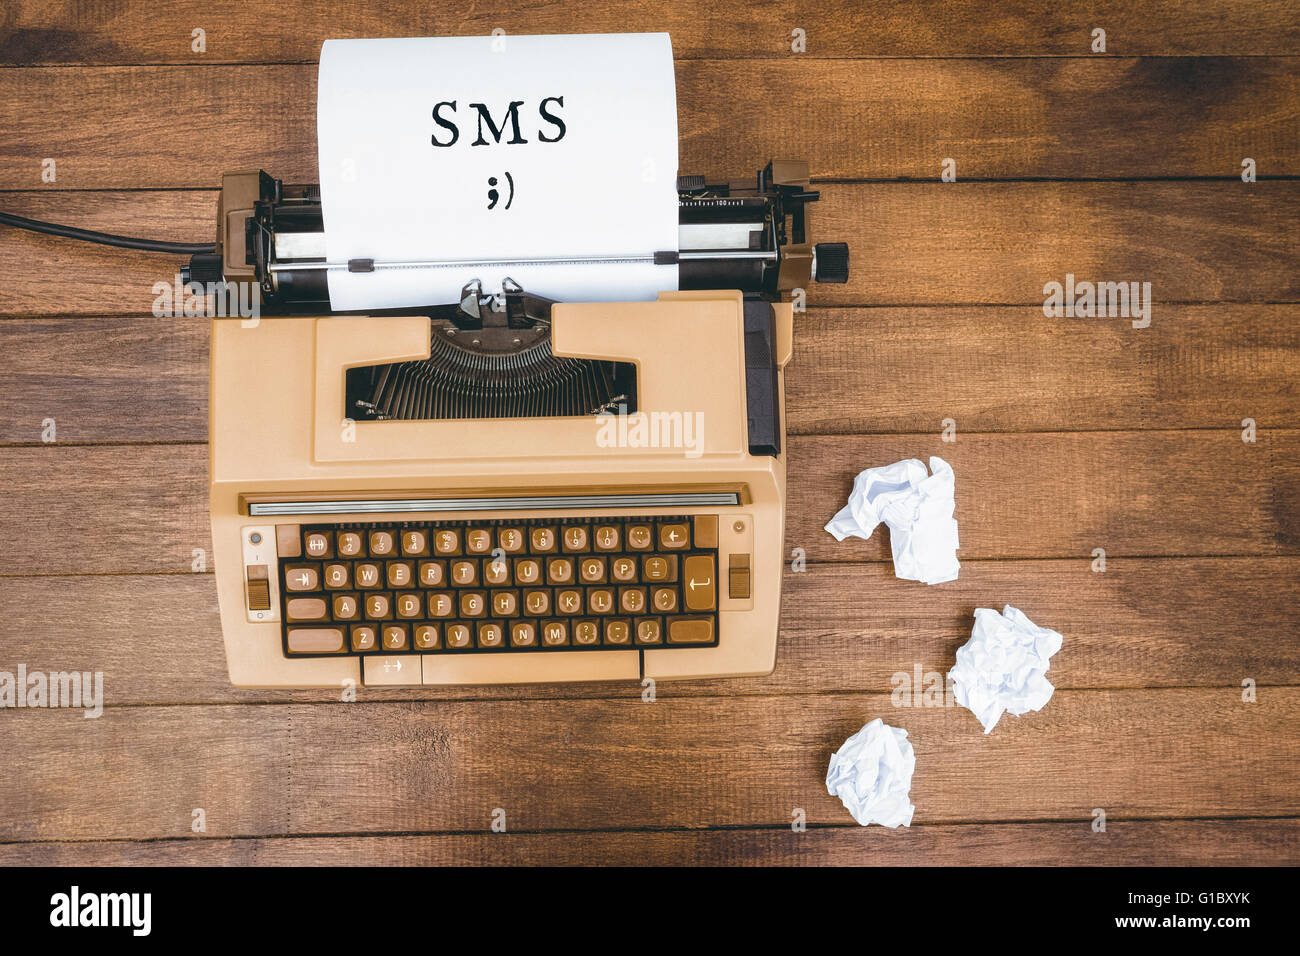 Composite image of sms message on a white background - Stock Image